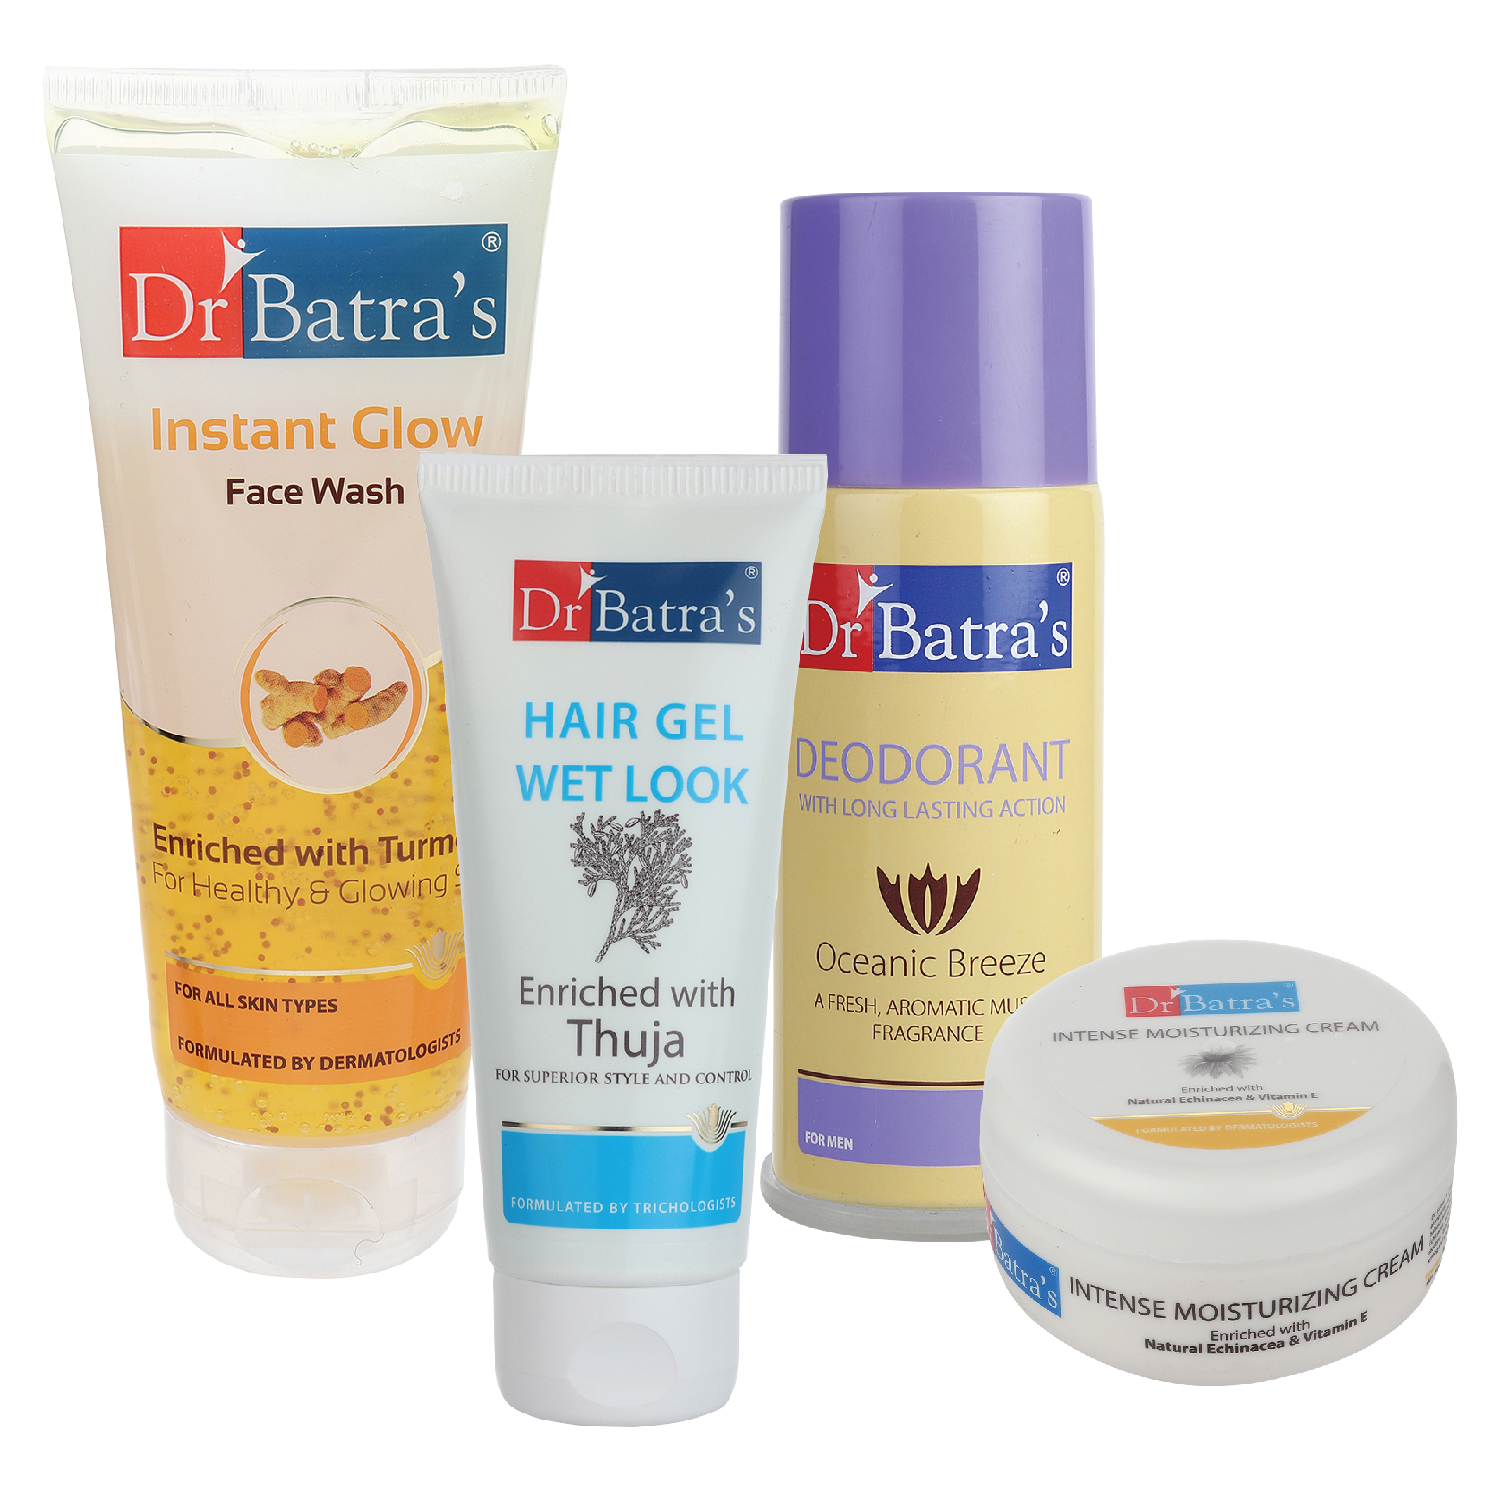 Dr Batra's | Dr Batra's Hair Gel - 100 gm, Instant Glow Face Wash 200 gm, Deo For Men-100 gm and Intense Moisturizing Cream -100 G (Pack Of 4 For Men)